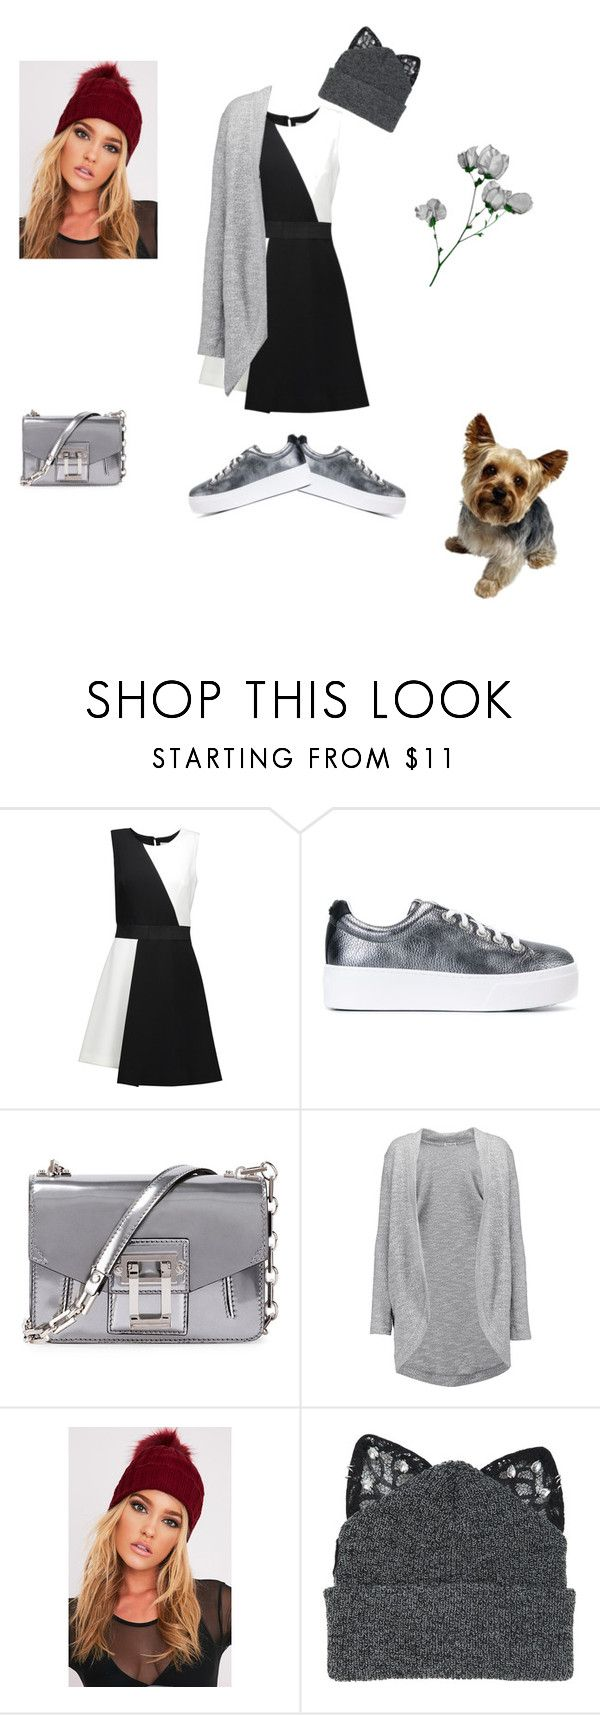 """""""Because I Can.."""" by katieness ❤ liked on Polyvore featuring Milly, Kenzo, Proenza Schouler, Splendid and Silver Spoon Attire"""